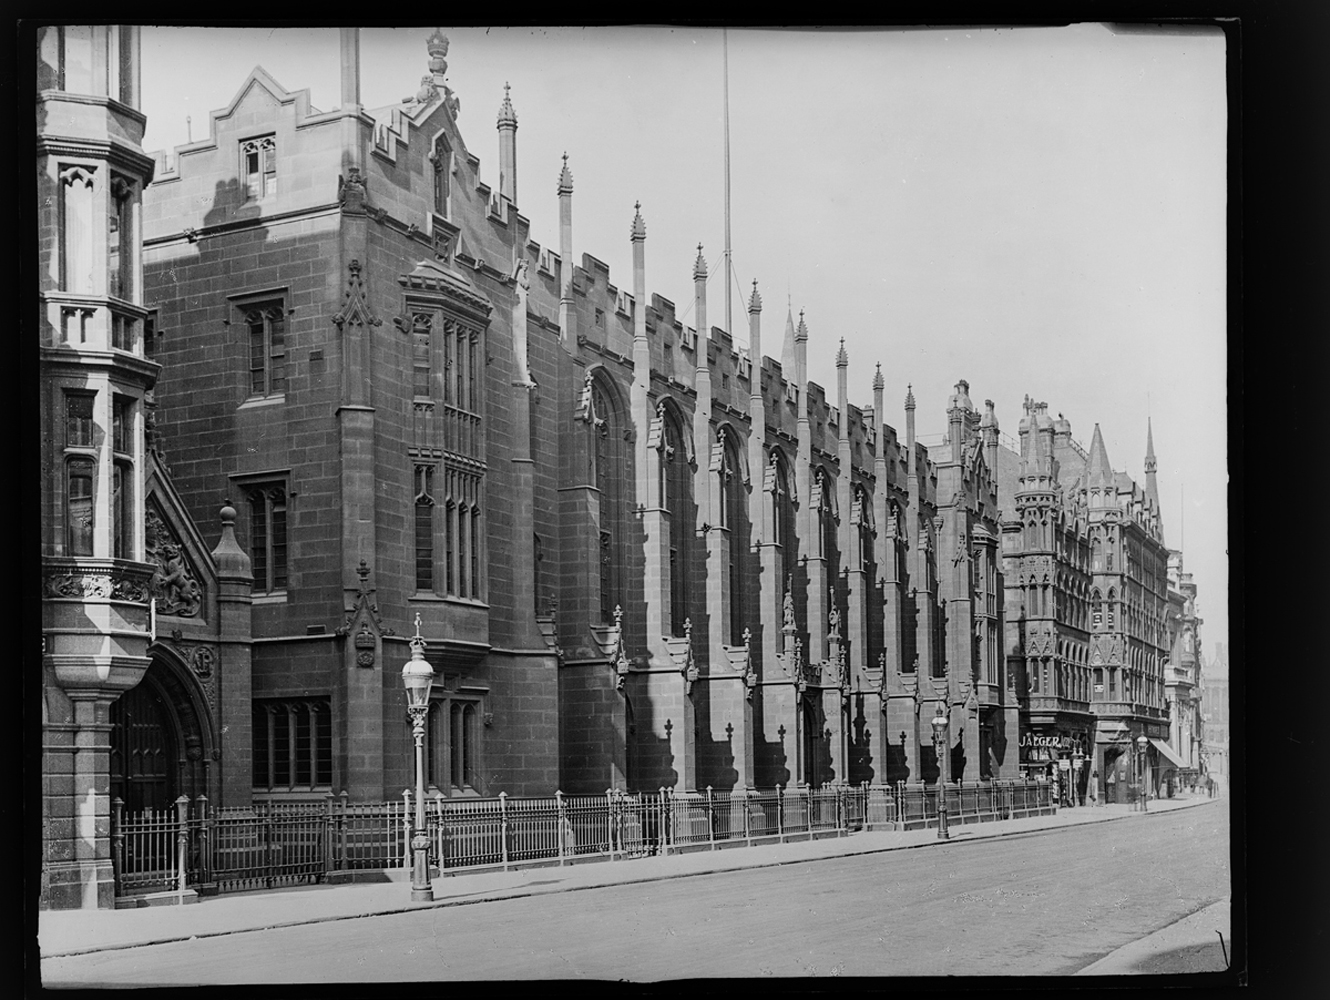 http://davidrowan.org/files/gimgs/54_ke-archive-extra-large-glass-plate-negatives----new-st-school-exterior.jpg